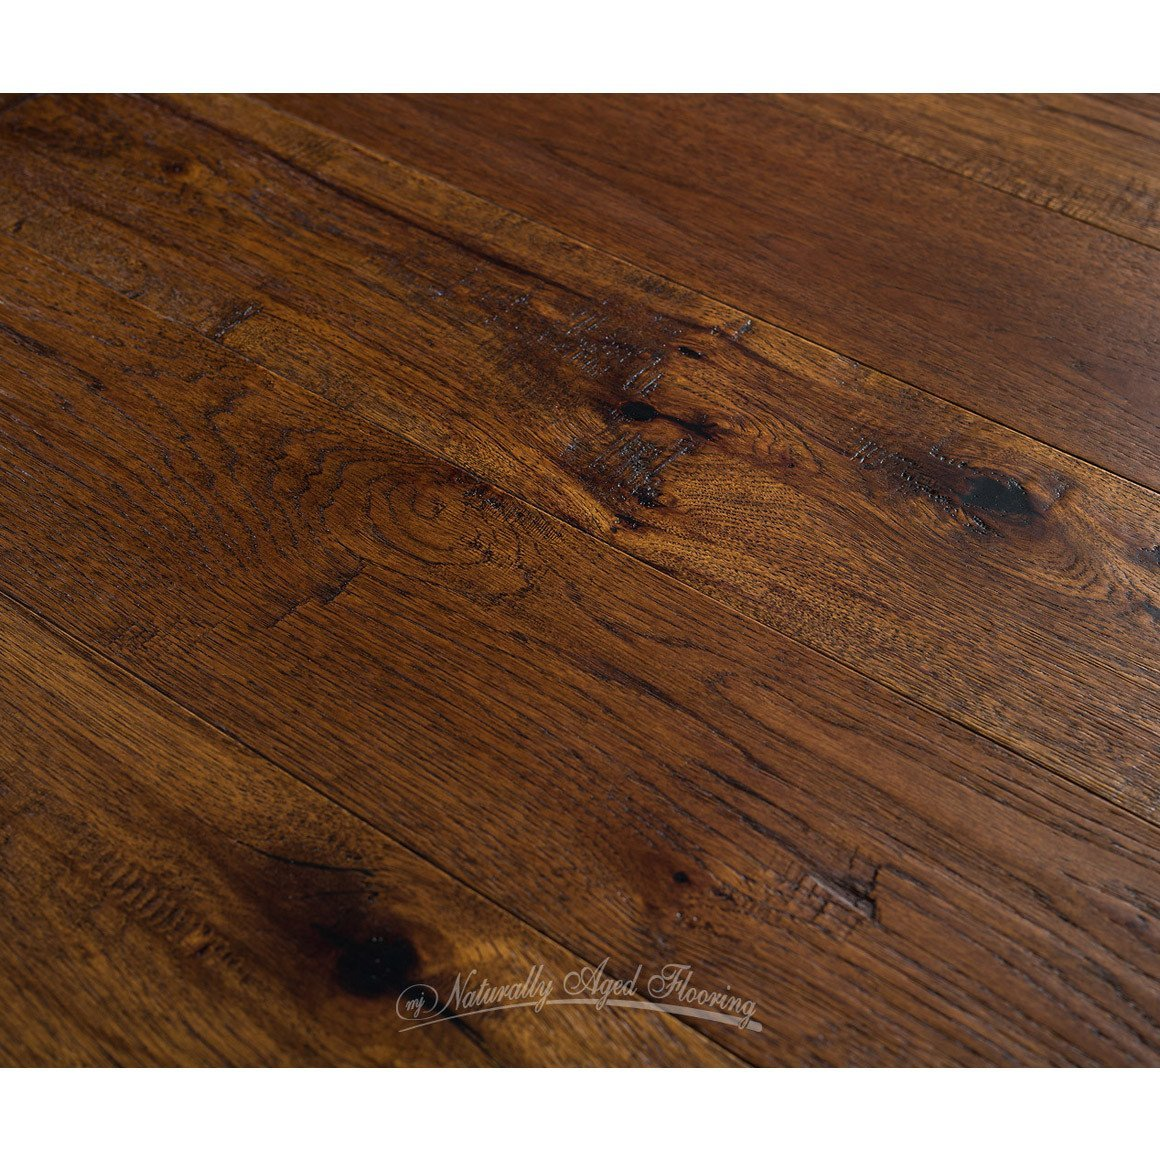 Naturally Aged Flooring Medallion Collection Lost Canyon Zoom